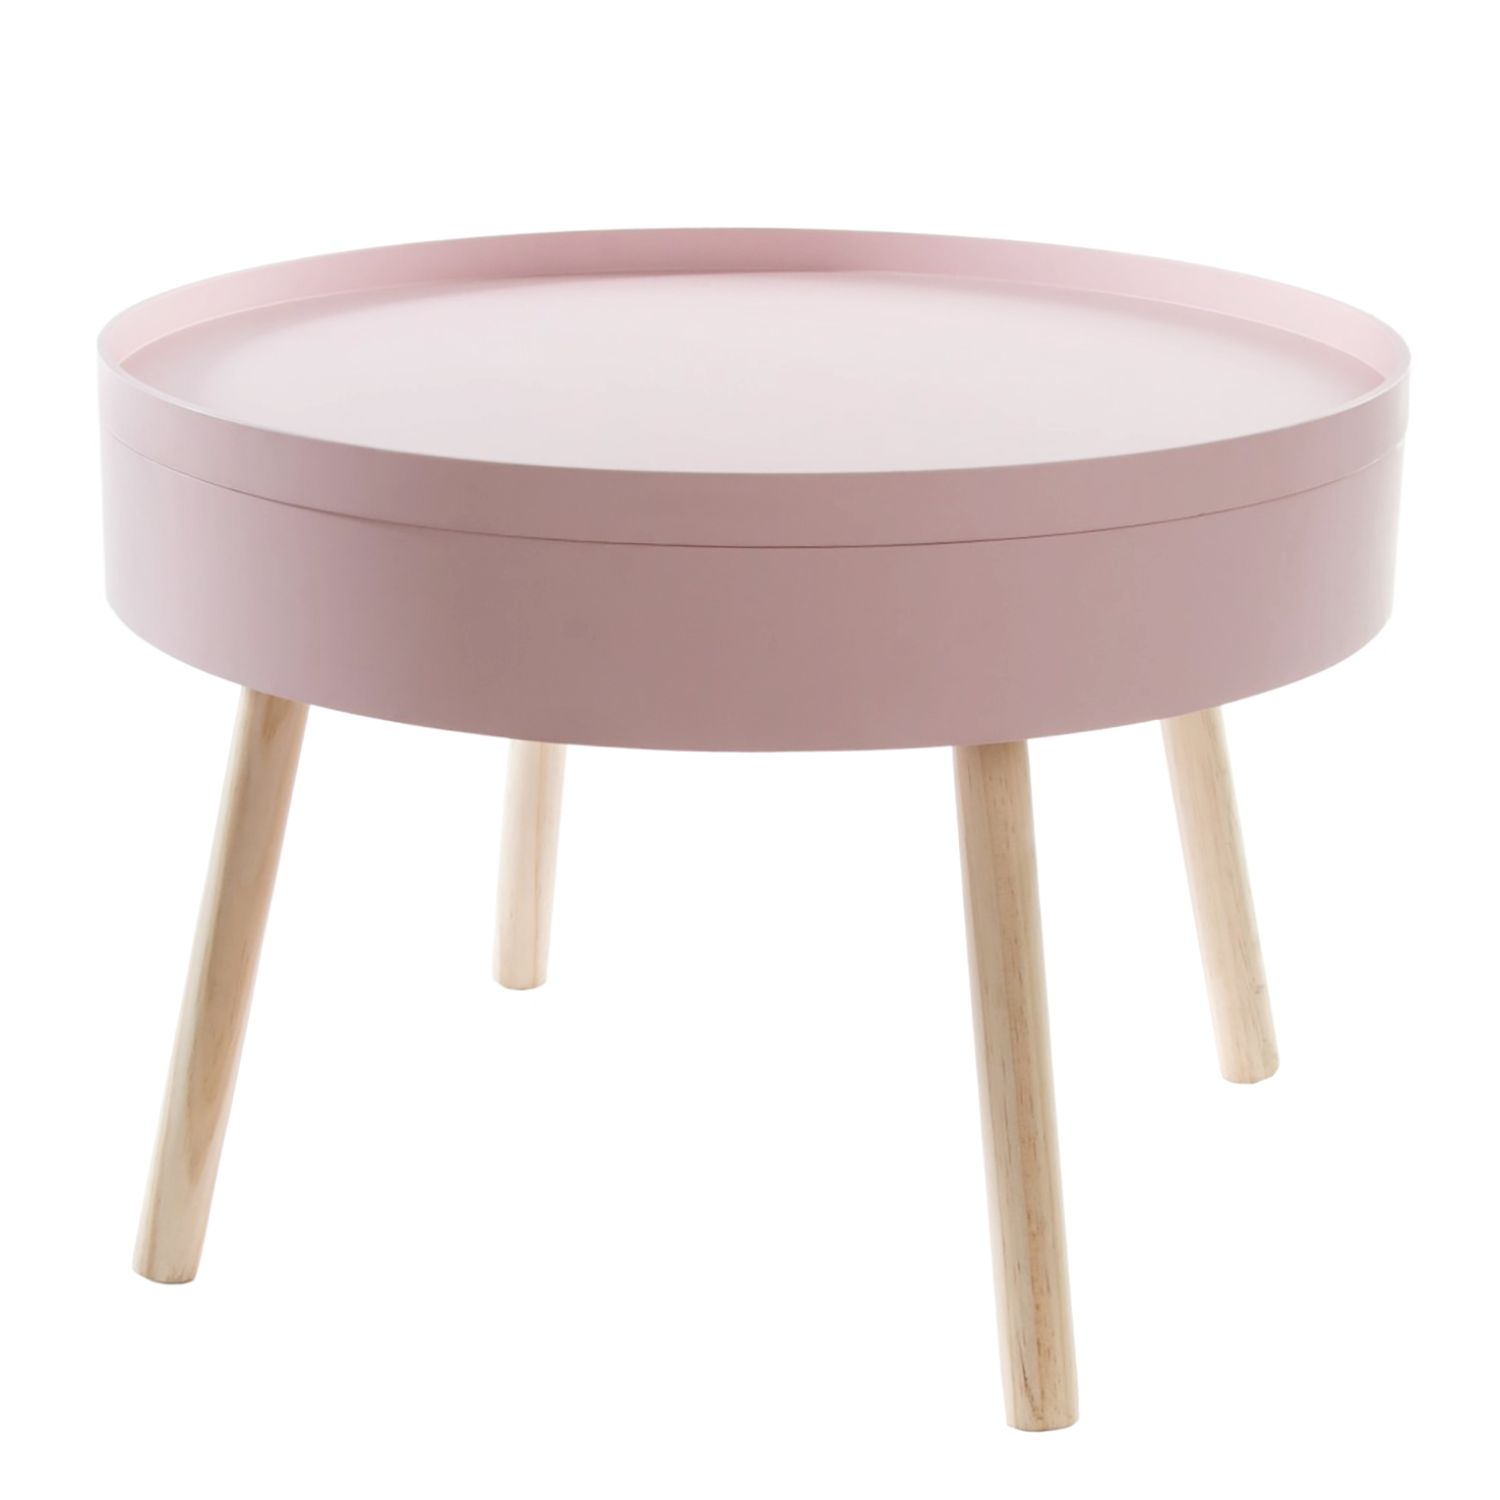 Table d'appoint Embala